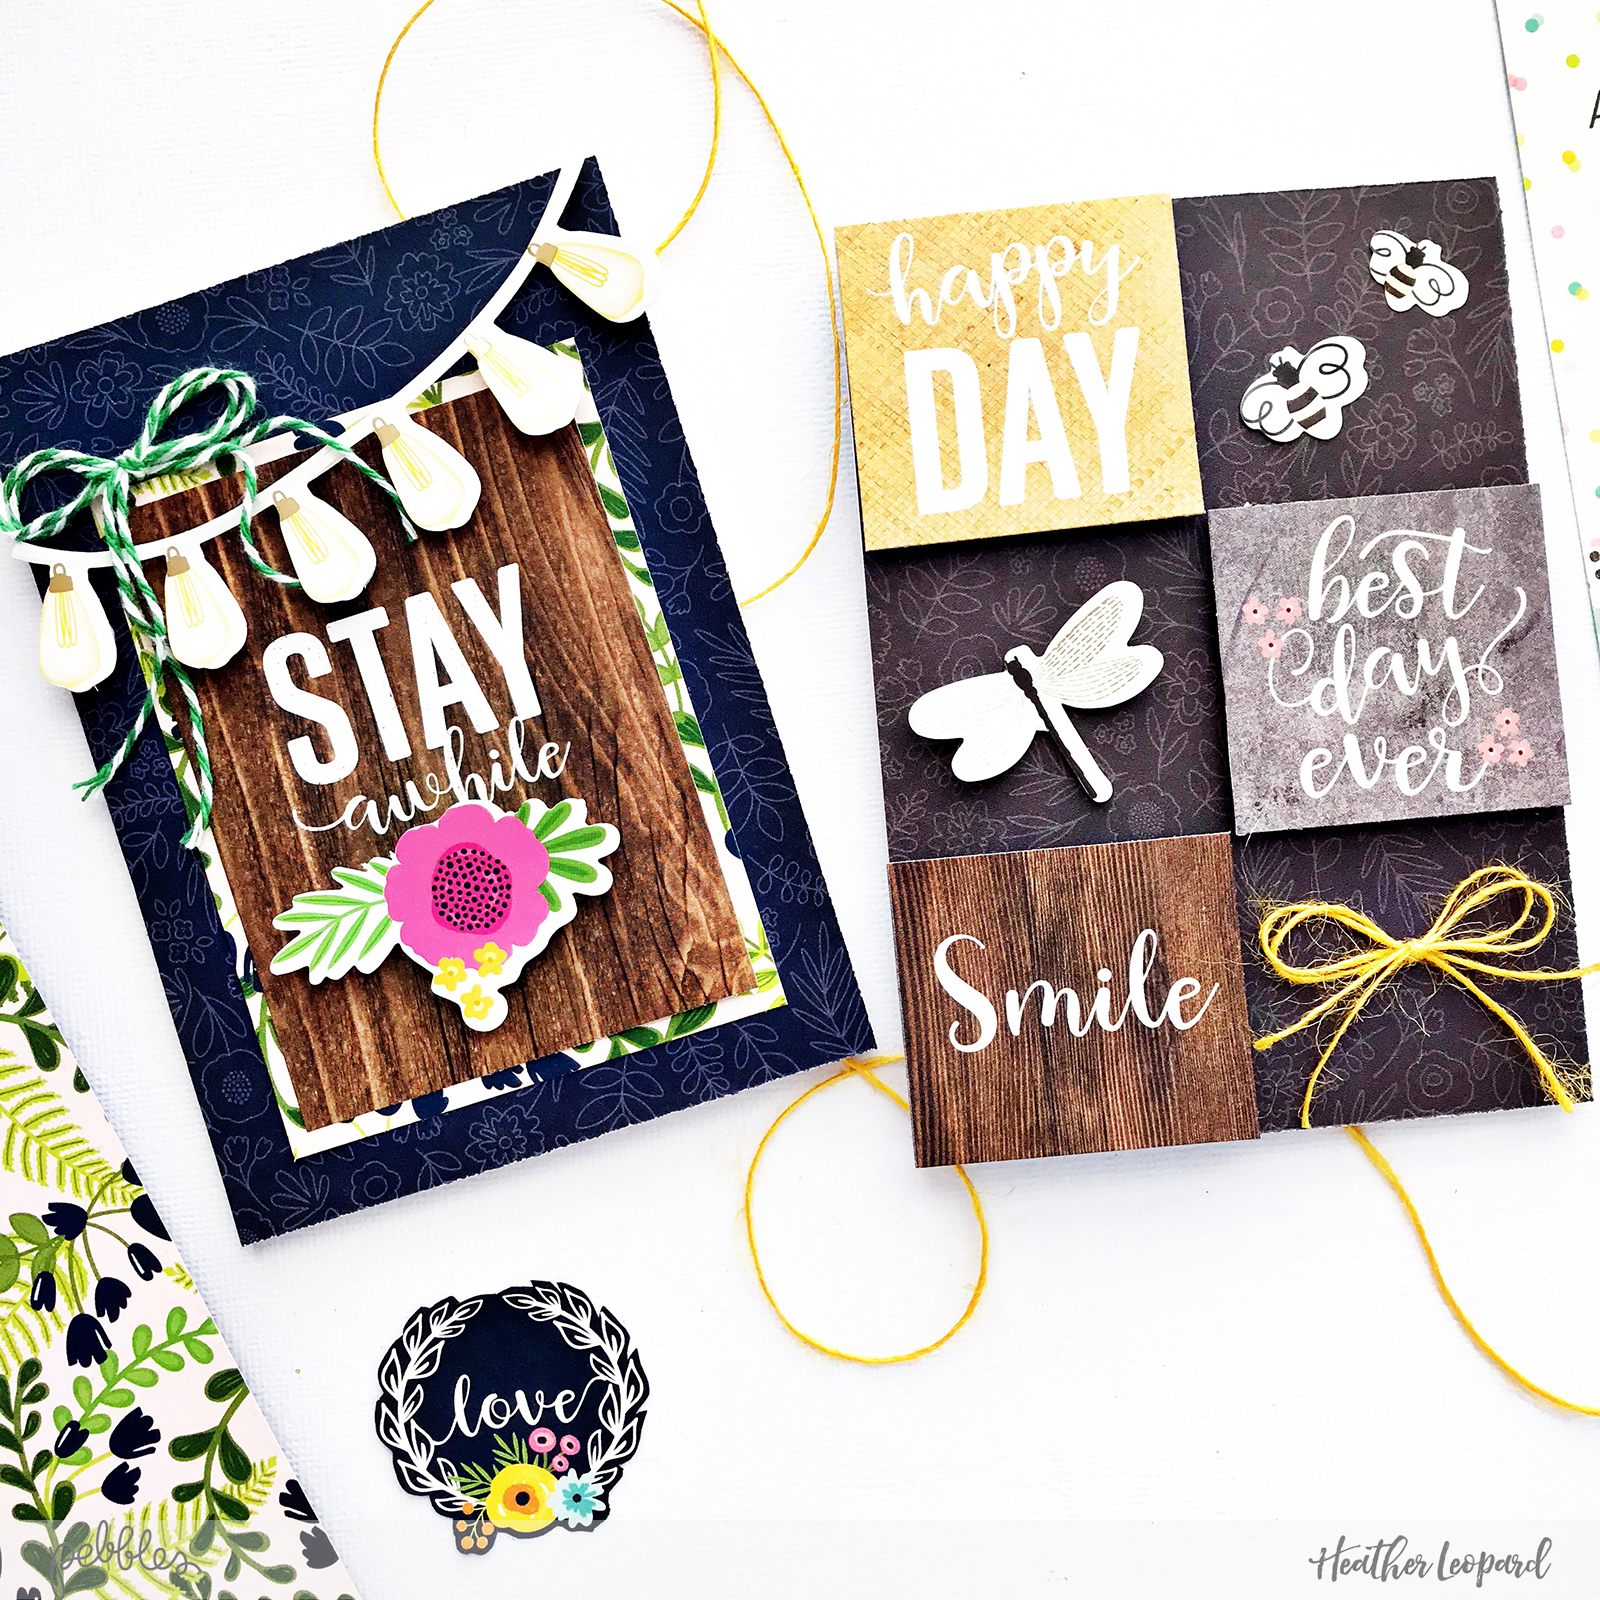 Masculine Cards by Heather Leopard Pebbles using @JenHadfield #PatioParty collection #cards #madewithpebbles